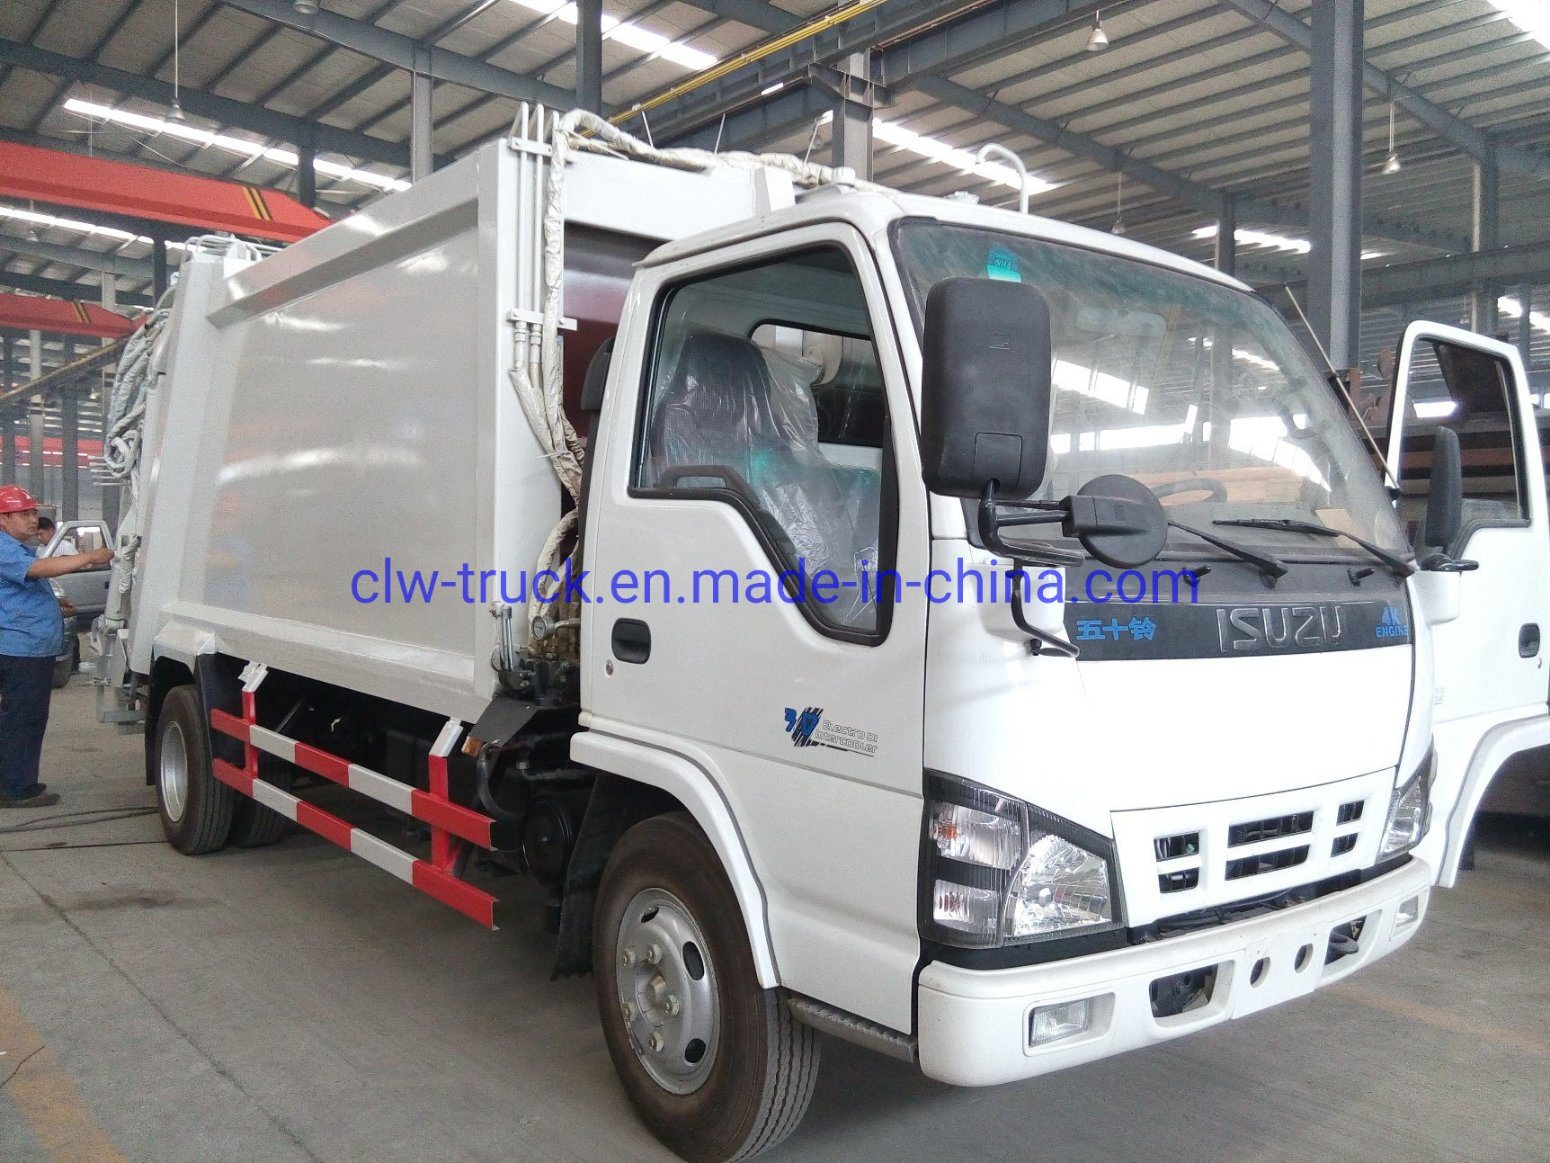 China Waste Management Truck, Waste Management Truck Manufacturers,  Suppliers, Price   Made-in-China com